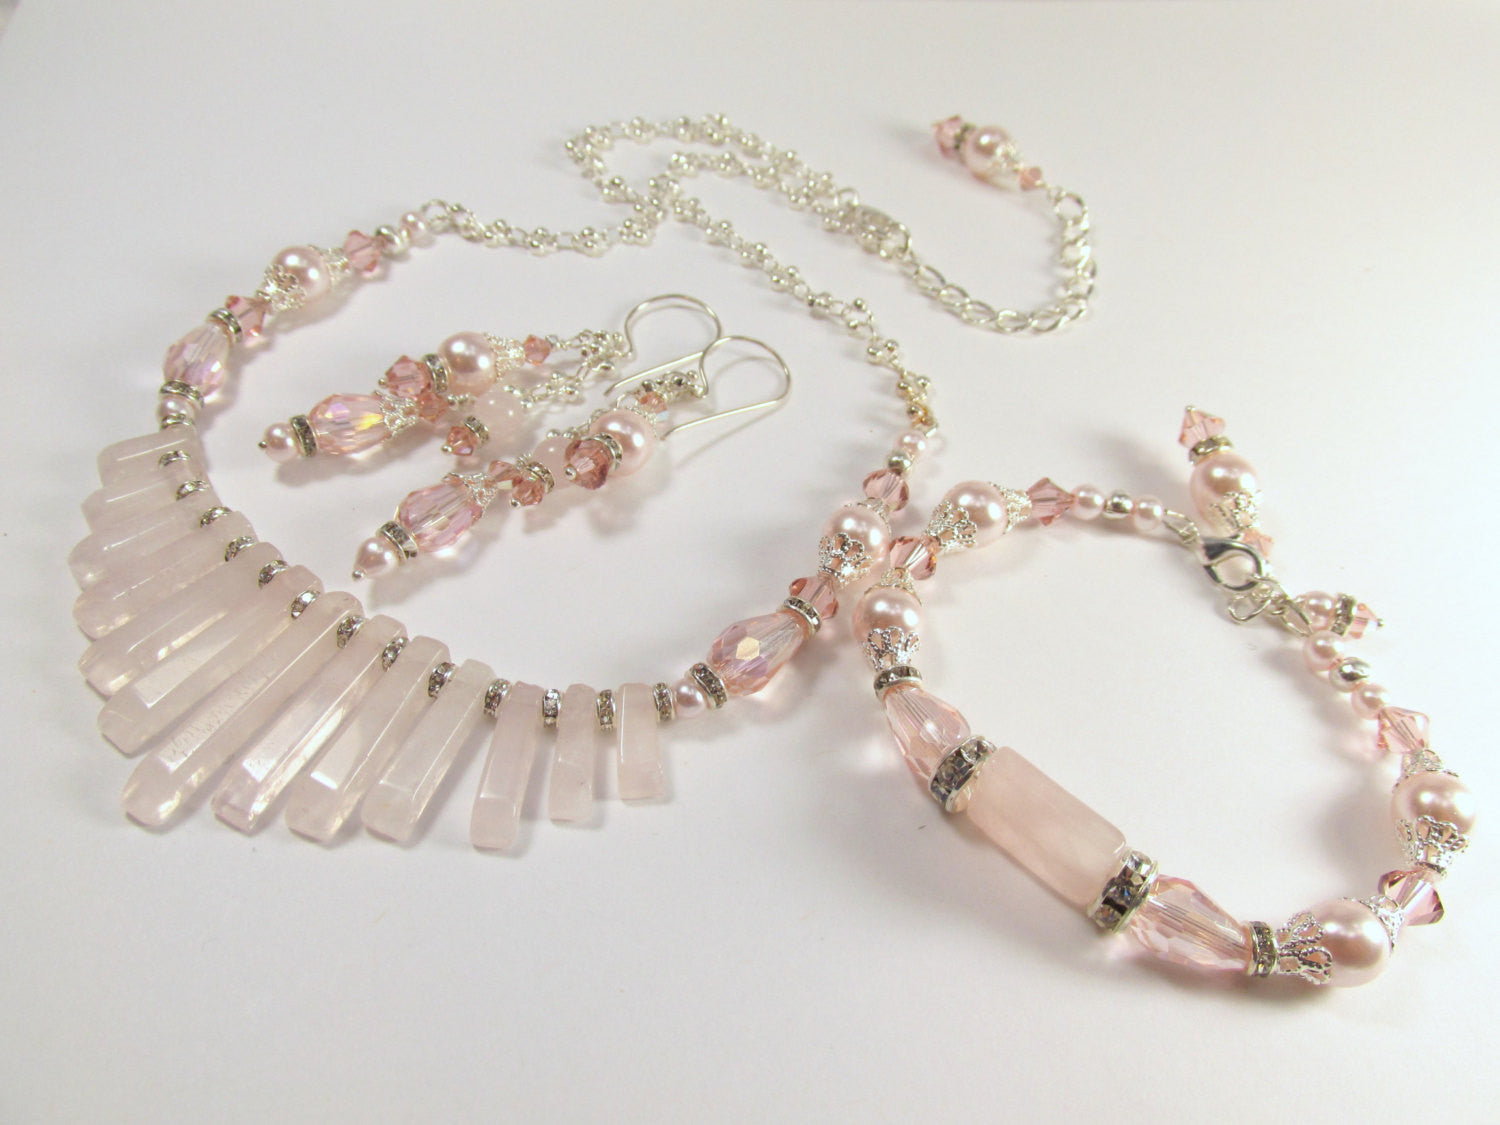 Vintage Pink Pale Blush Pearl, Rose Quartz, Crystal and Silver Bracelet with adjustable clasp - Odyssey Creations